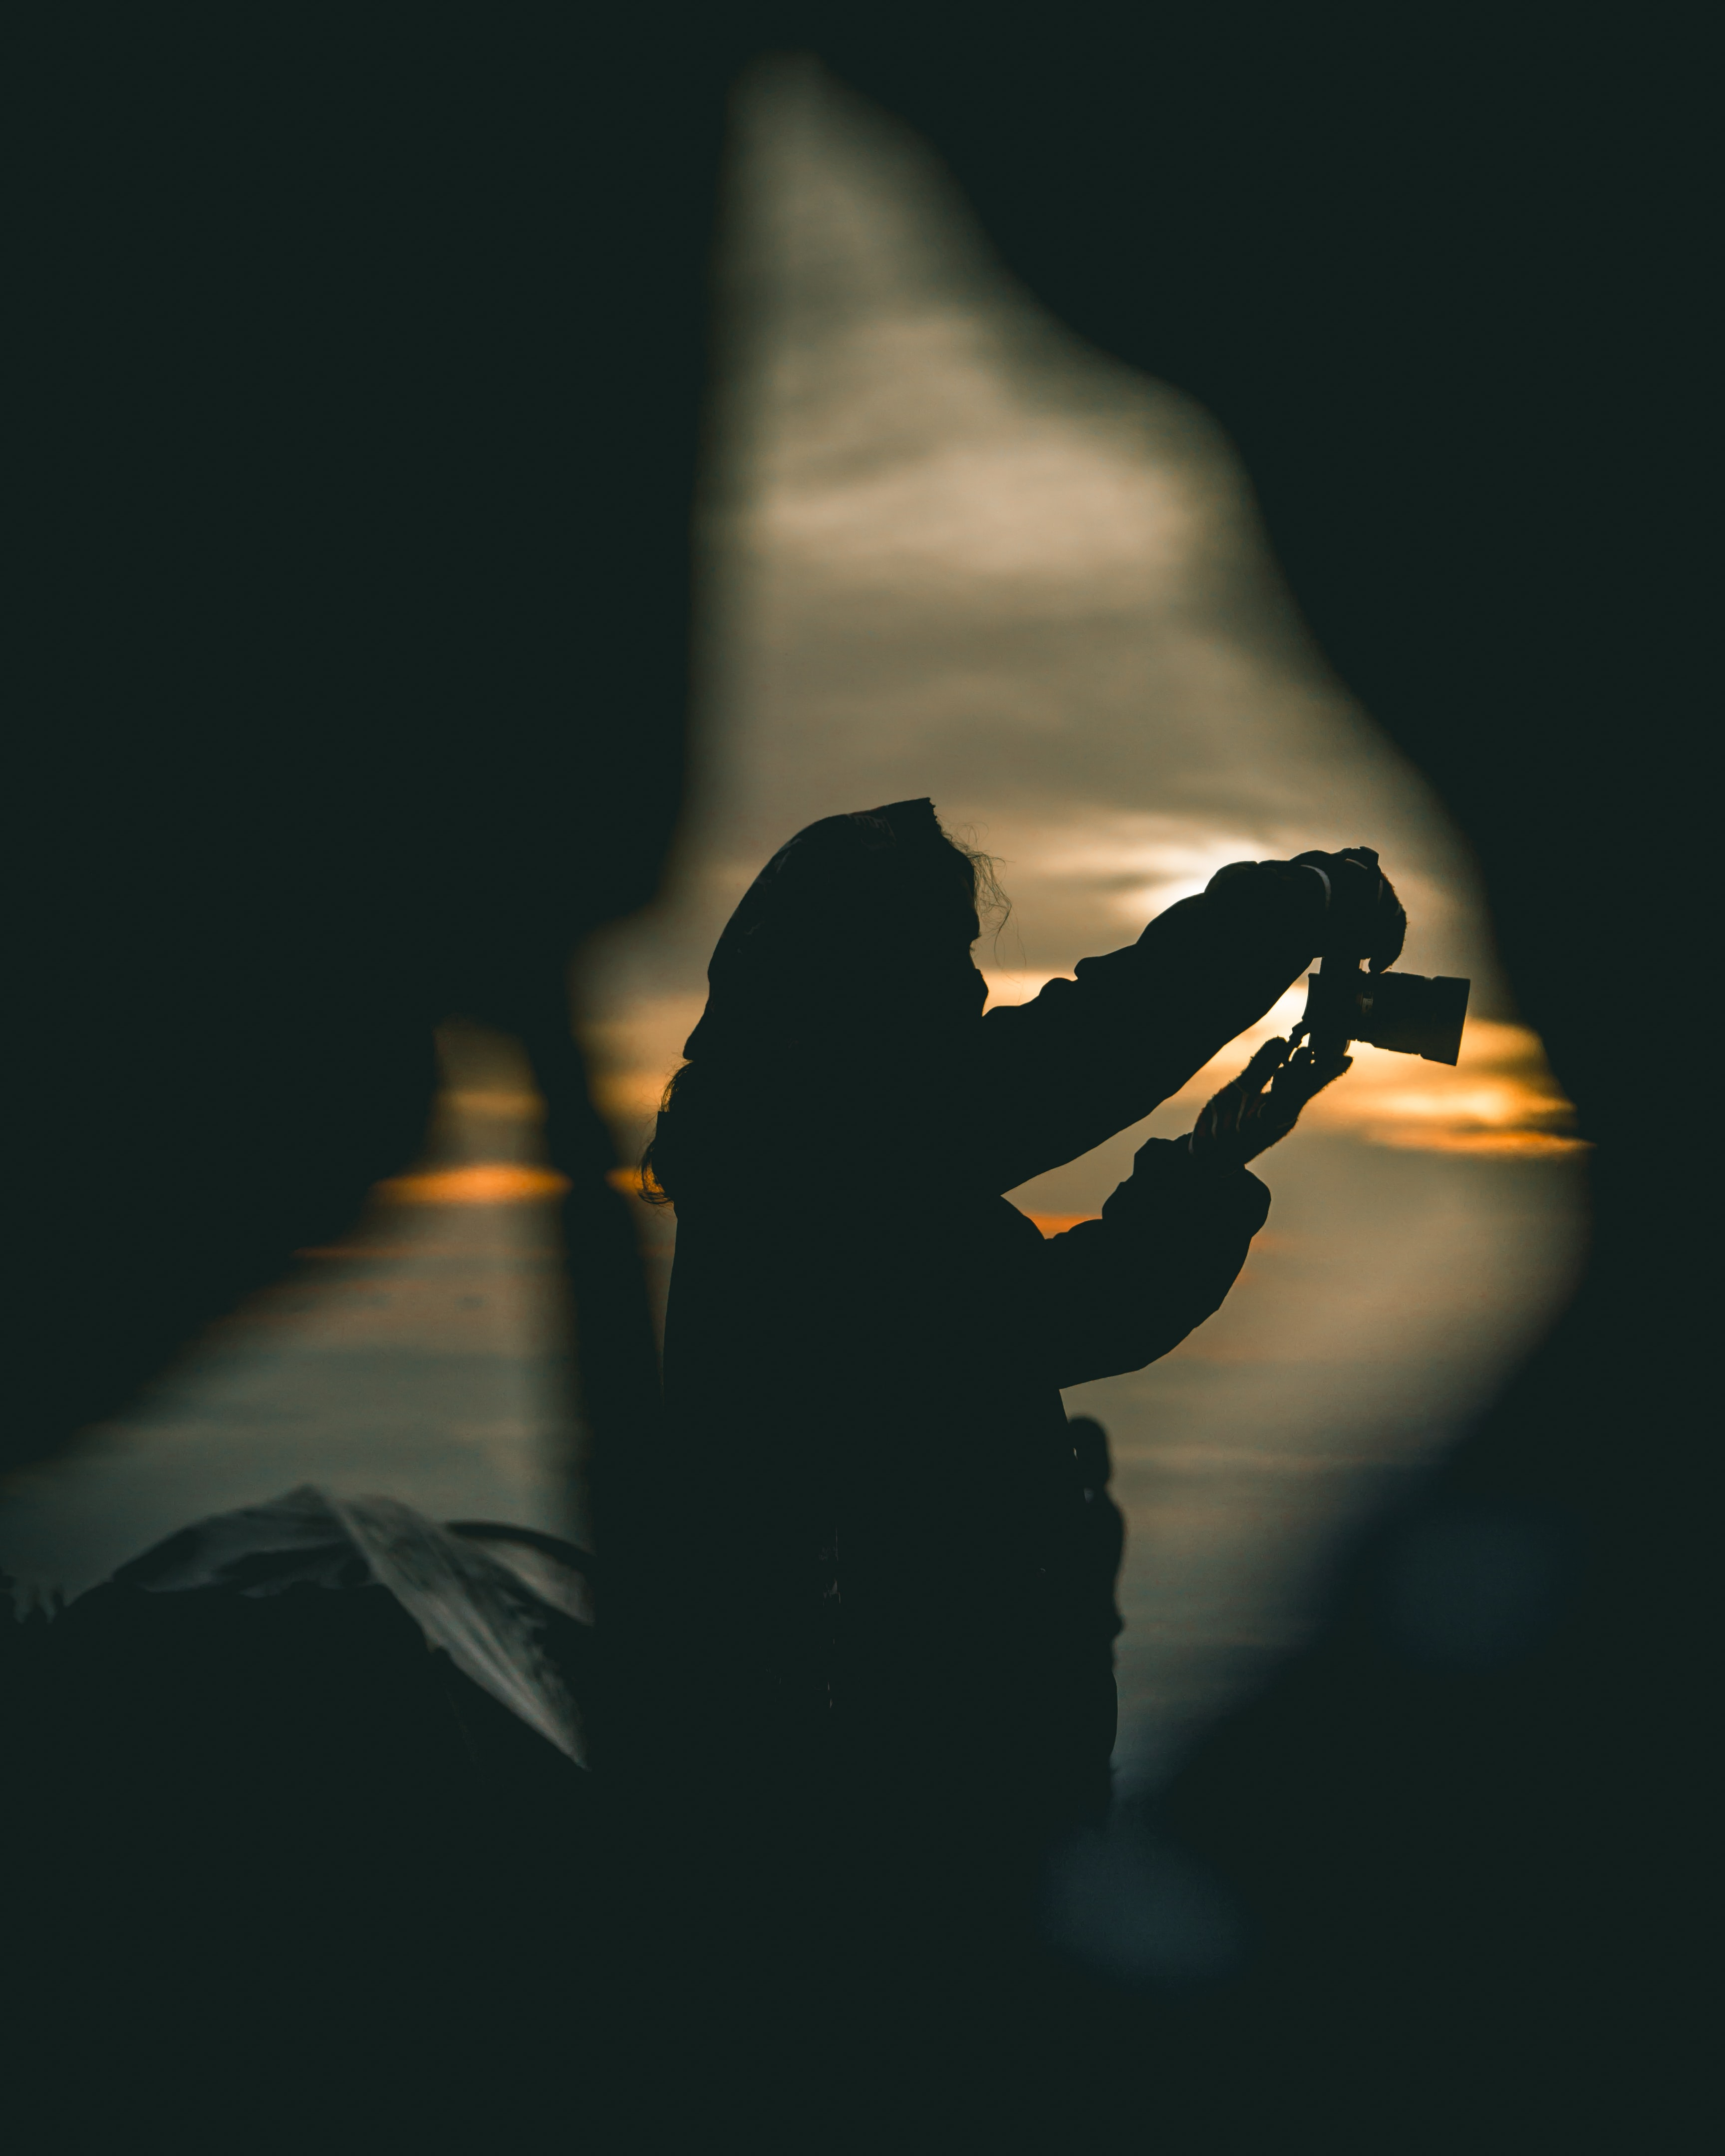 silhouette of person holding camera during orange sunset